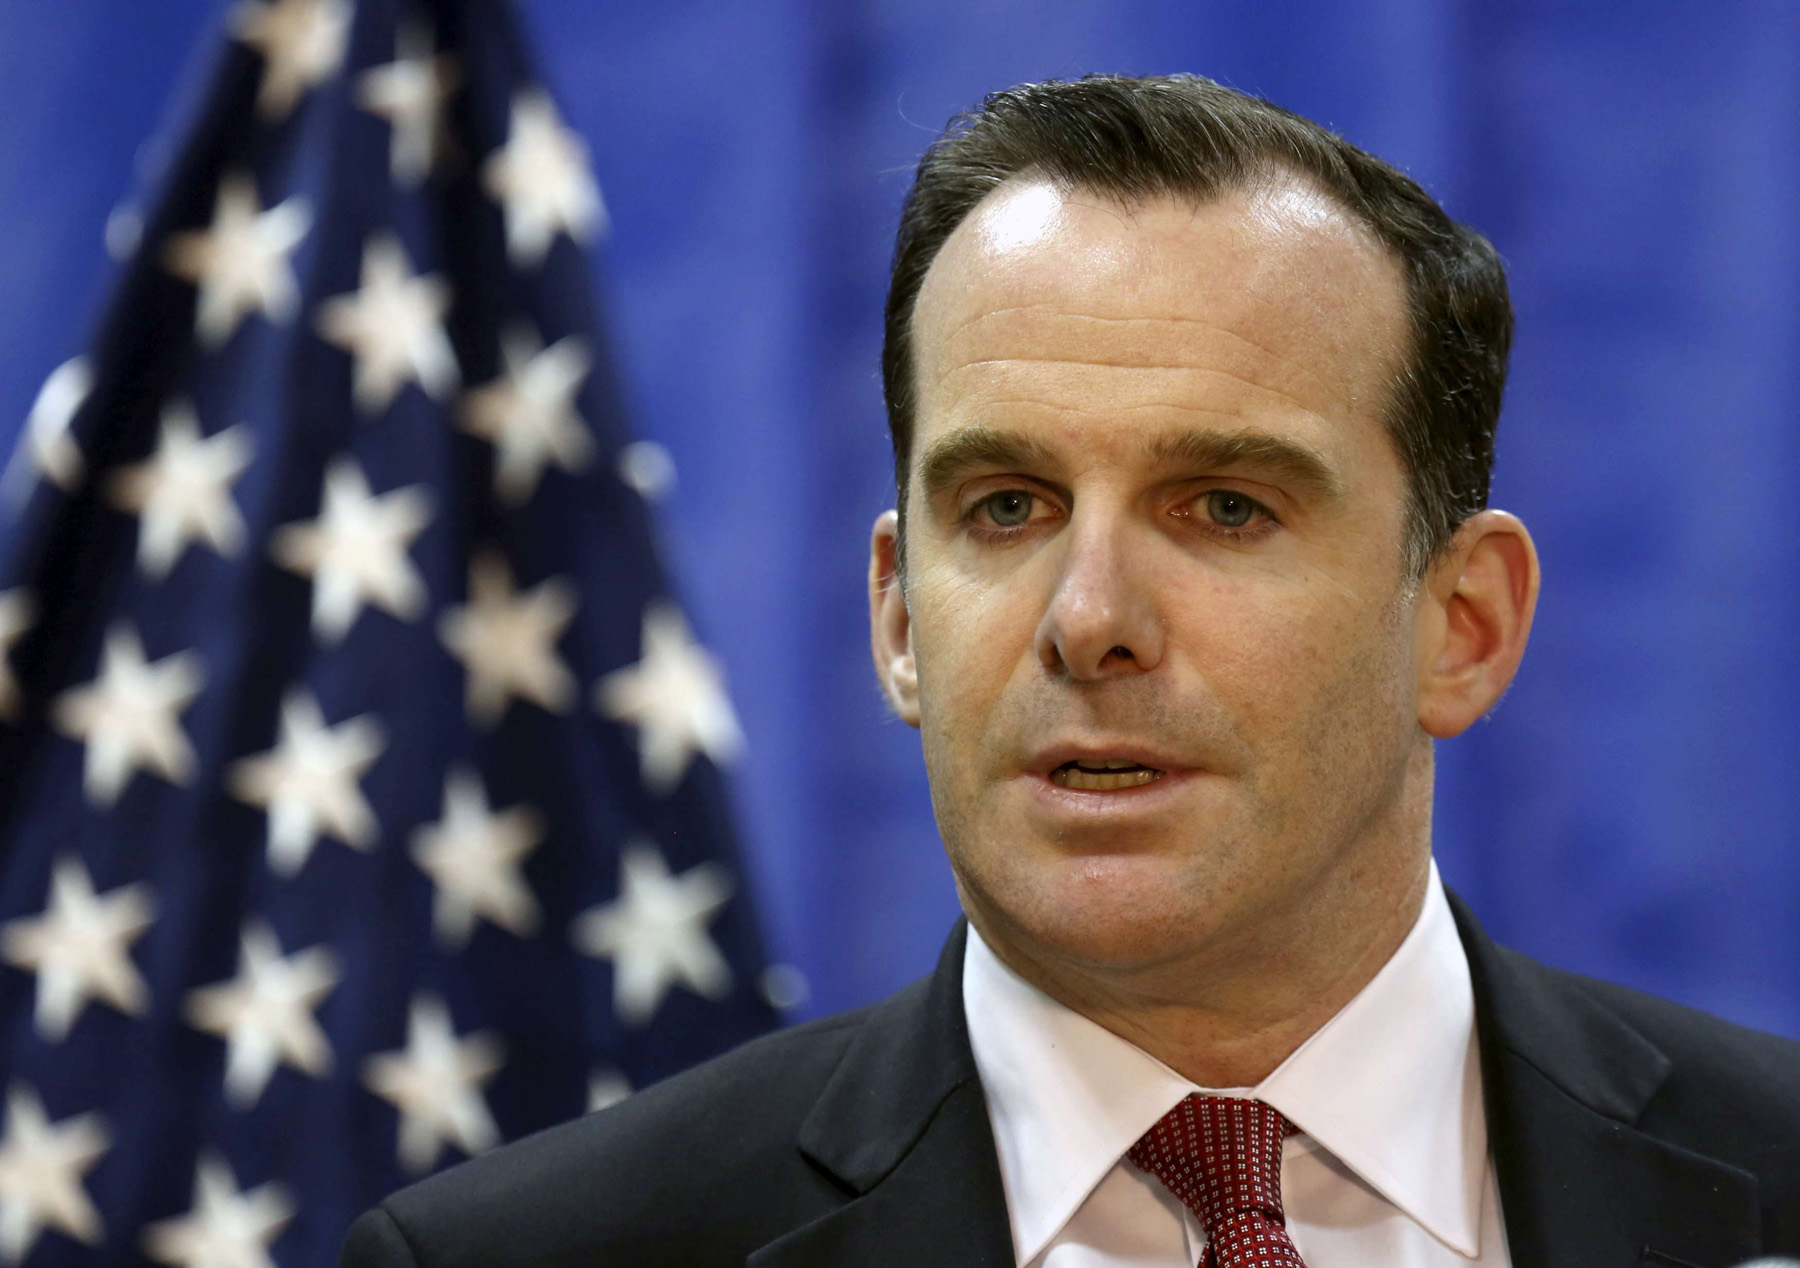 Brett McGurk, U.S. envoy to the coalition against Islamic State, speaks to during news conference at the U.S. Embassy in Baghdad, Iraq, March 5, 2016. (Reuters)